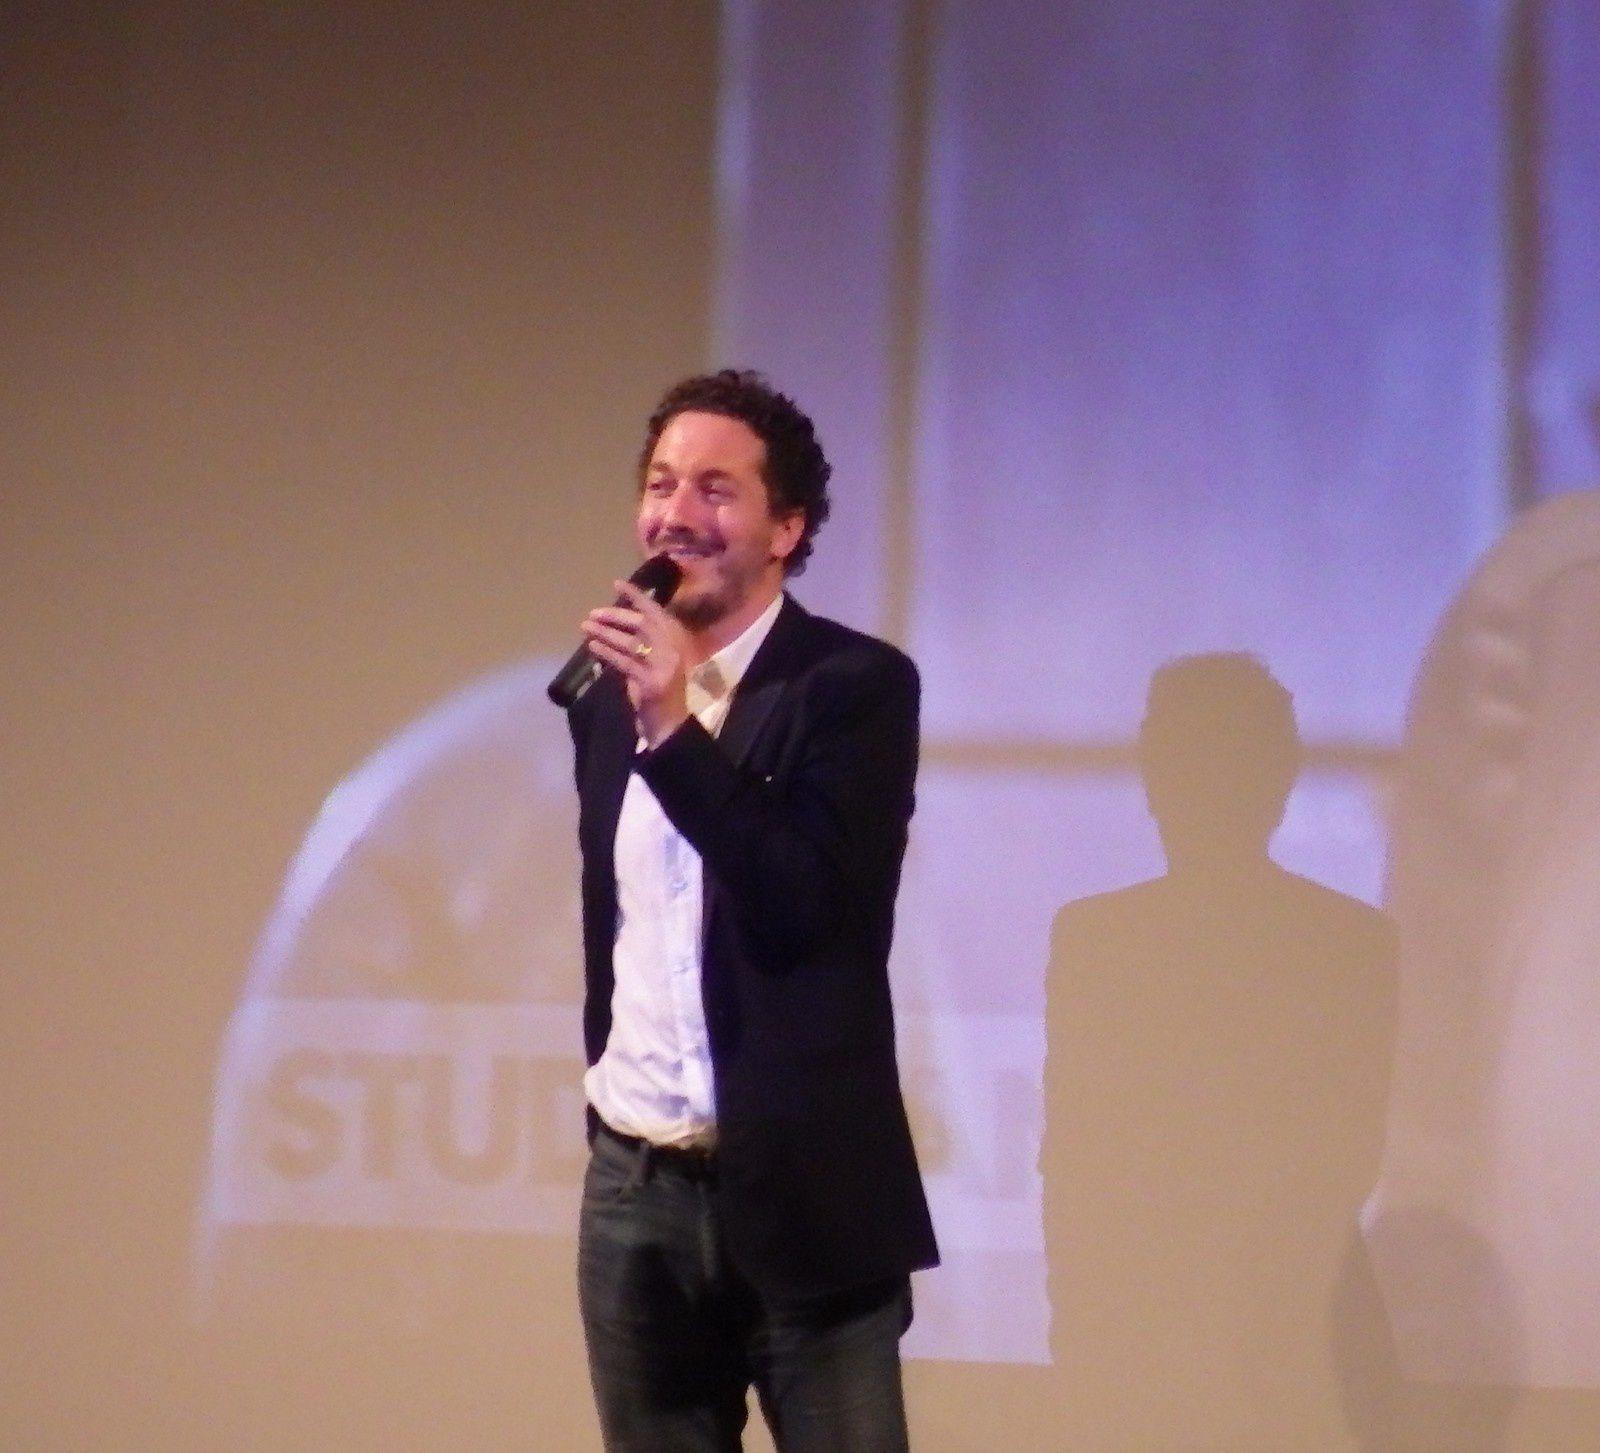 [info] Rencontre avec Guillaume Gallienne